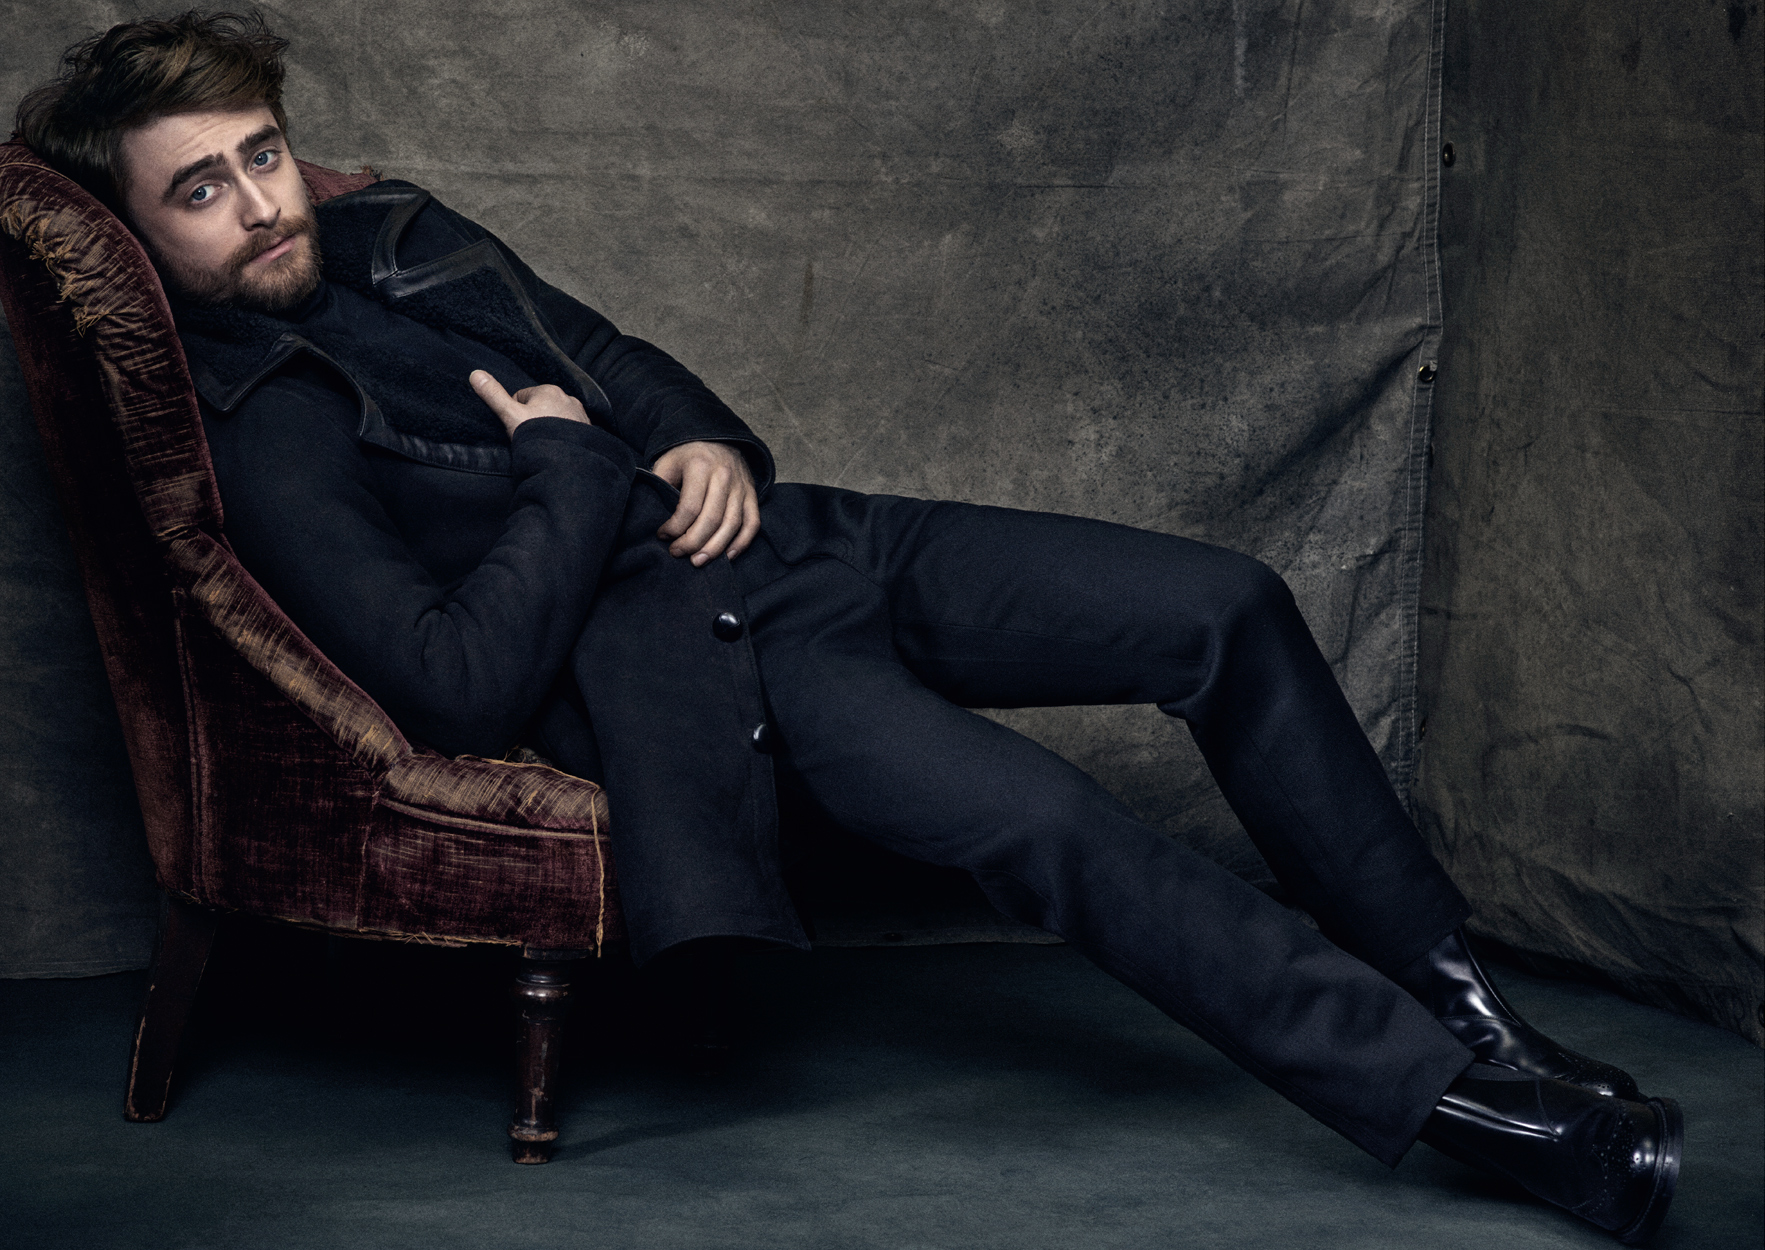 Celebrity Photographer Michael Schwartz: Daniel Radcliffe for Icon Magazine